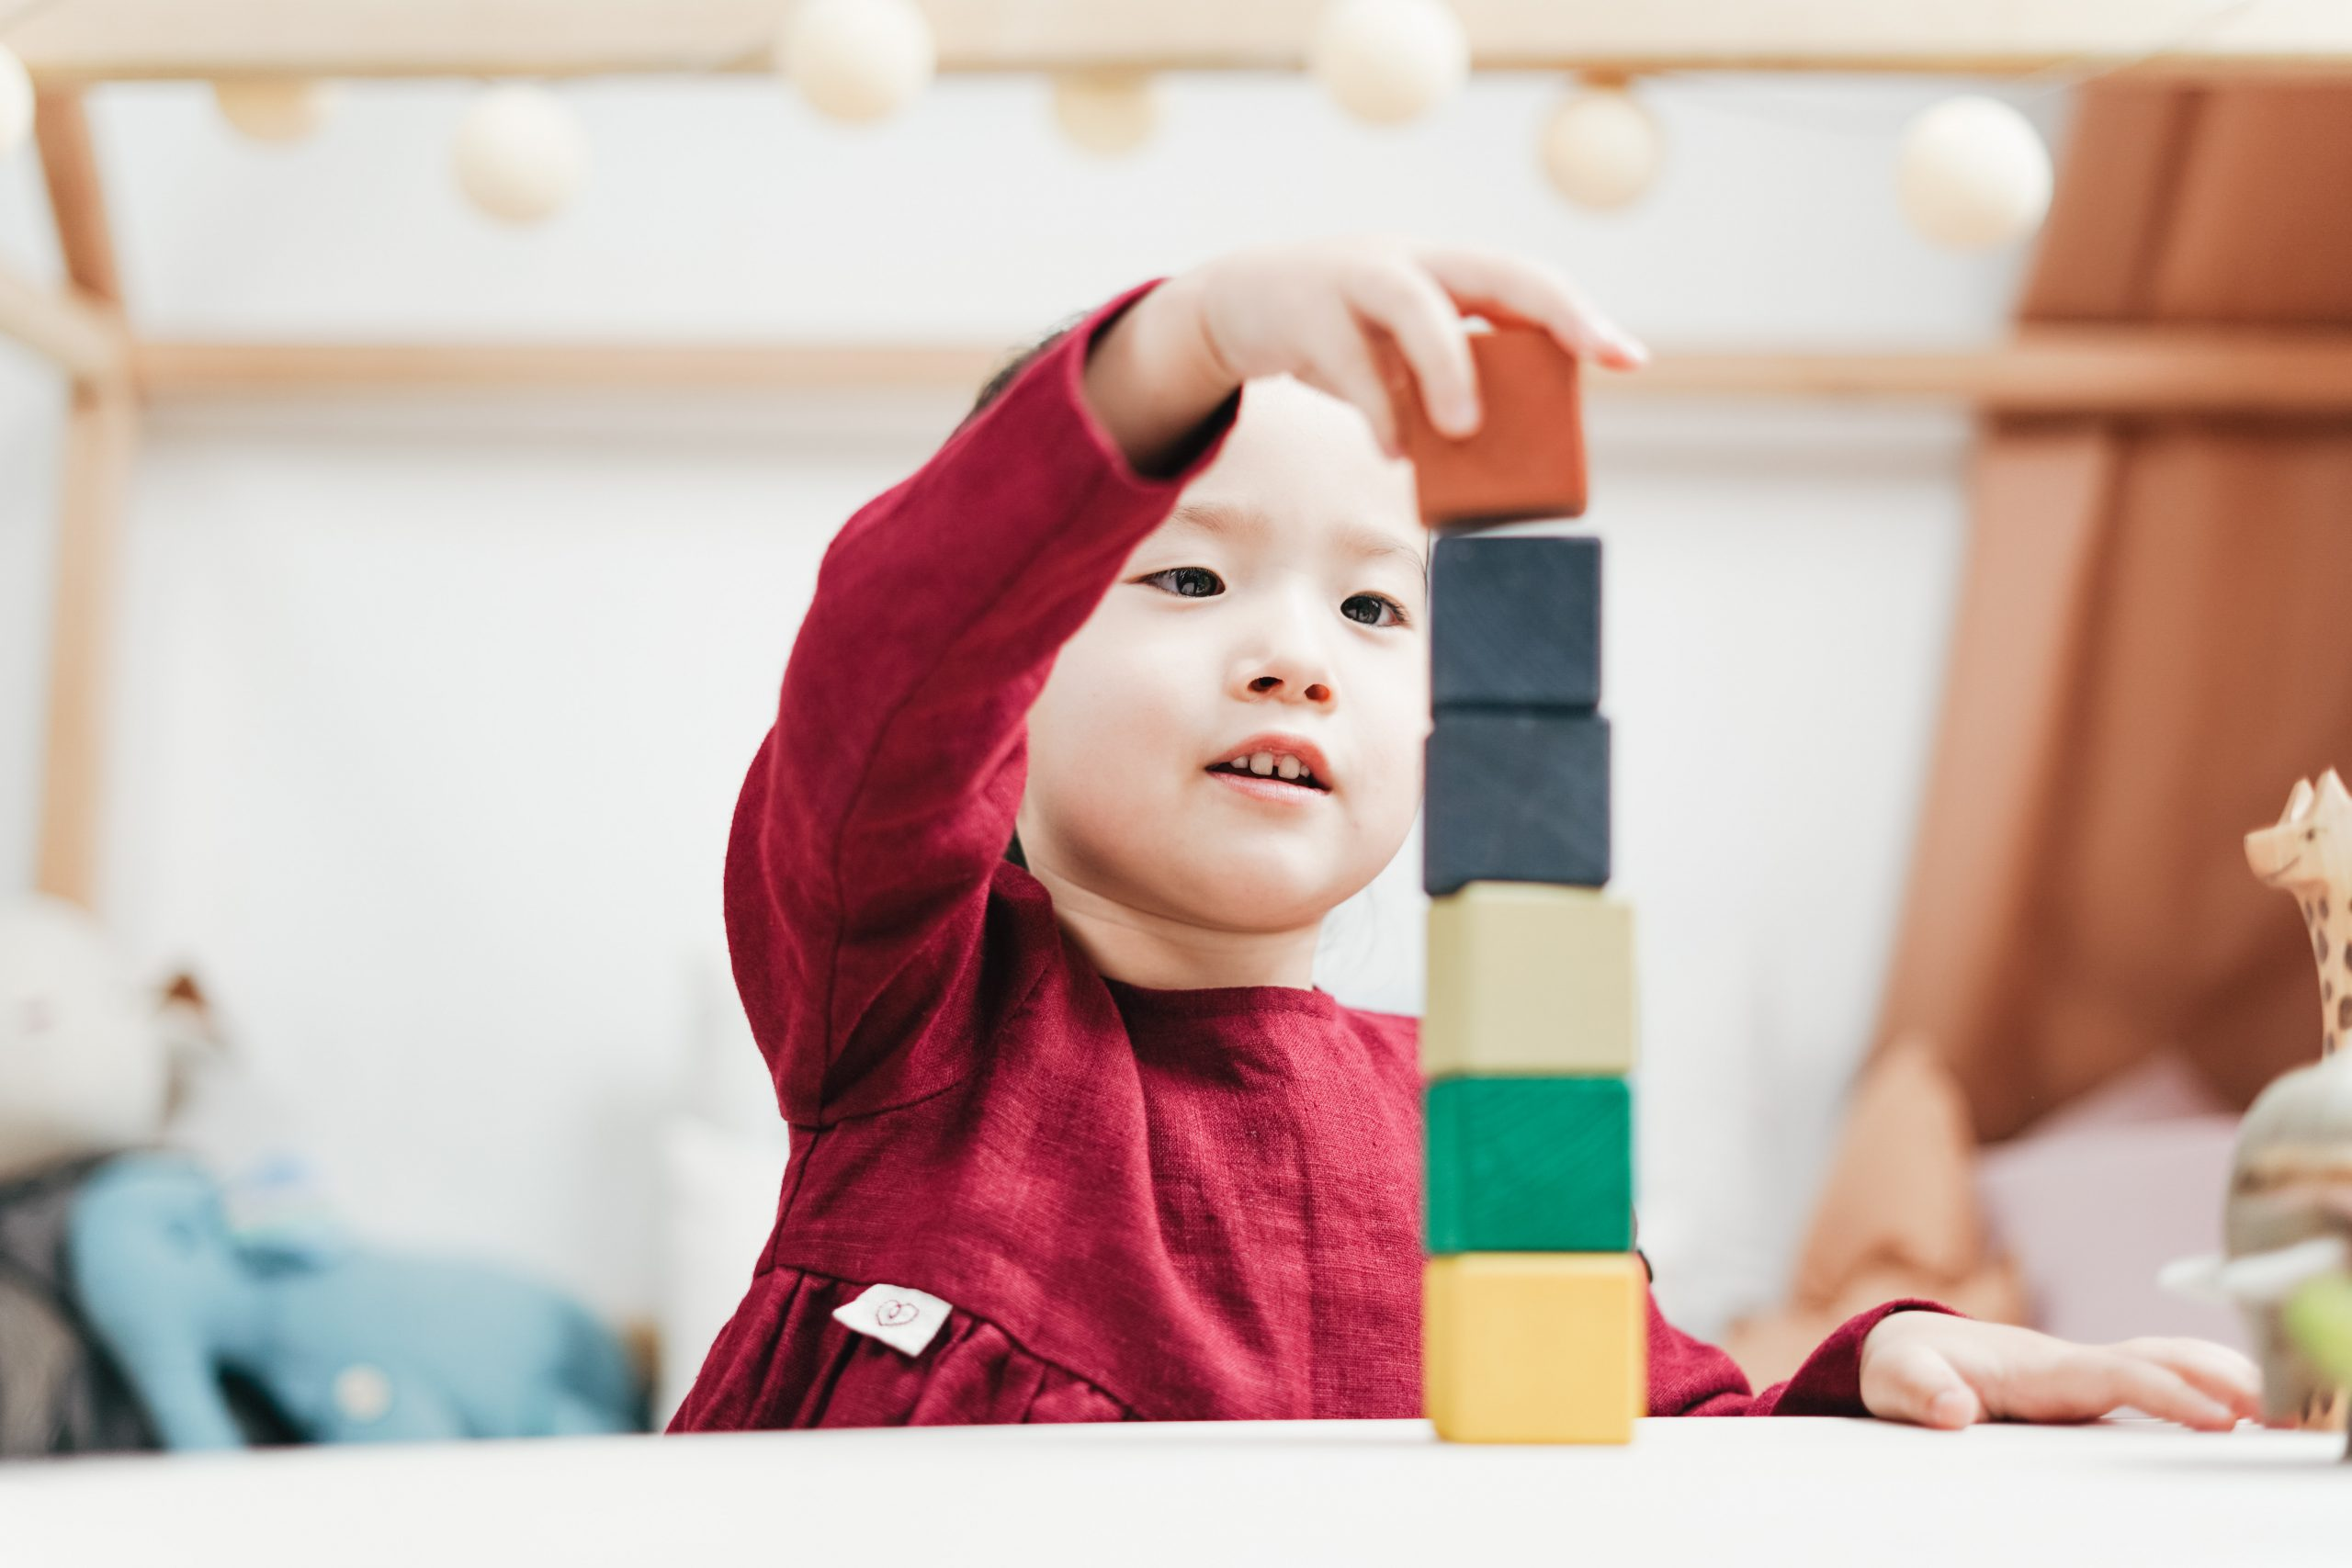 HEAL Faculty Associate Dr. Christina Ergler discovers toddlers are intuitive city planners, whose voices should be heard by all